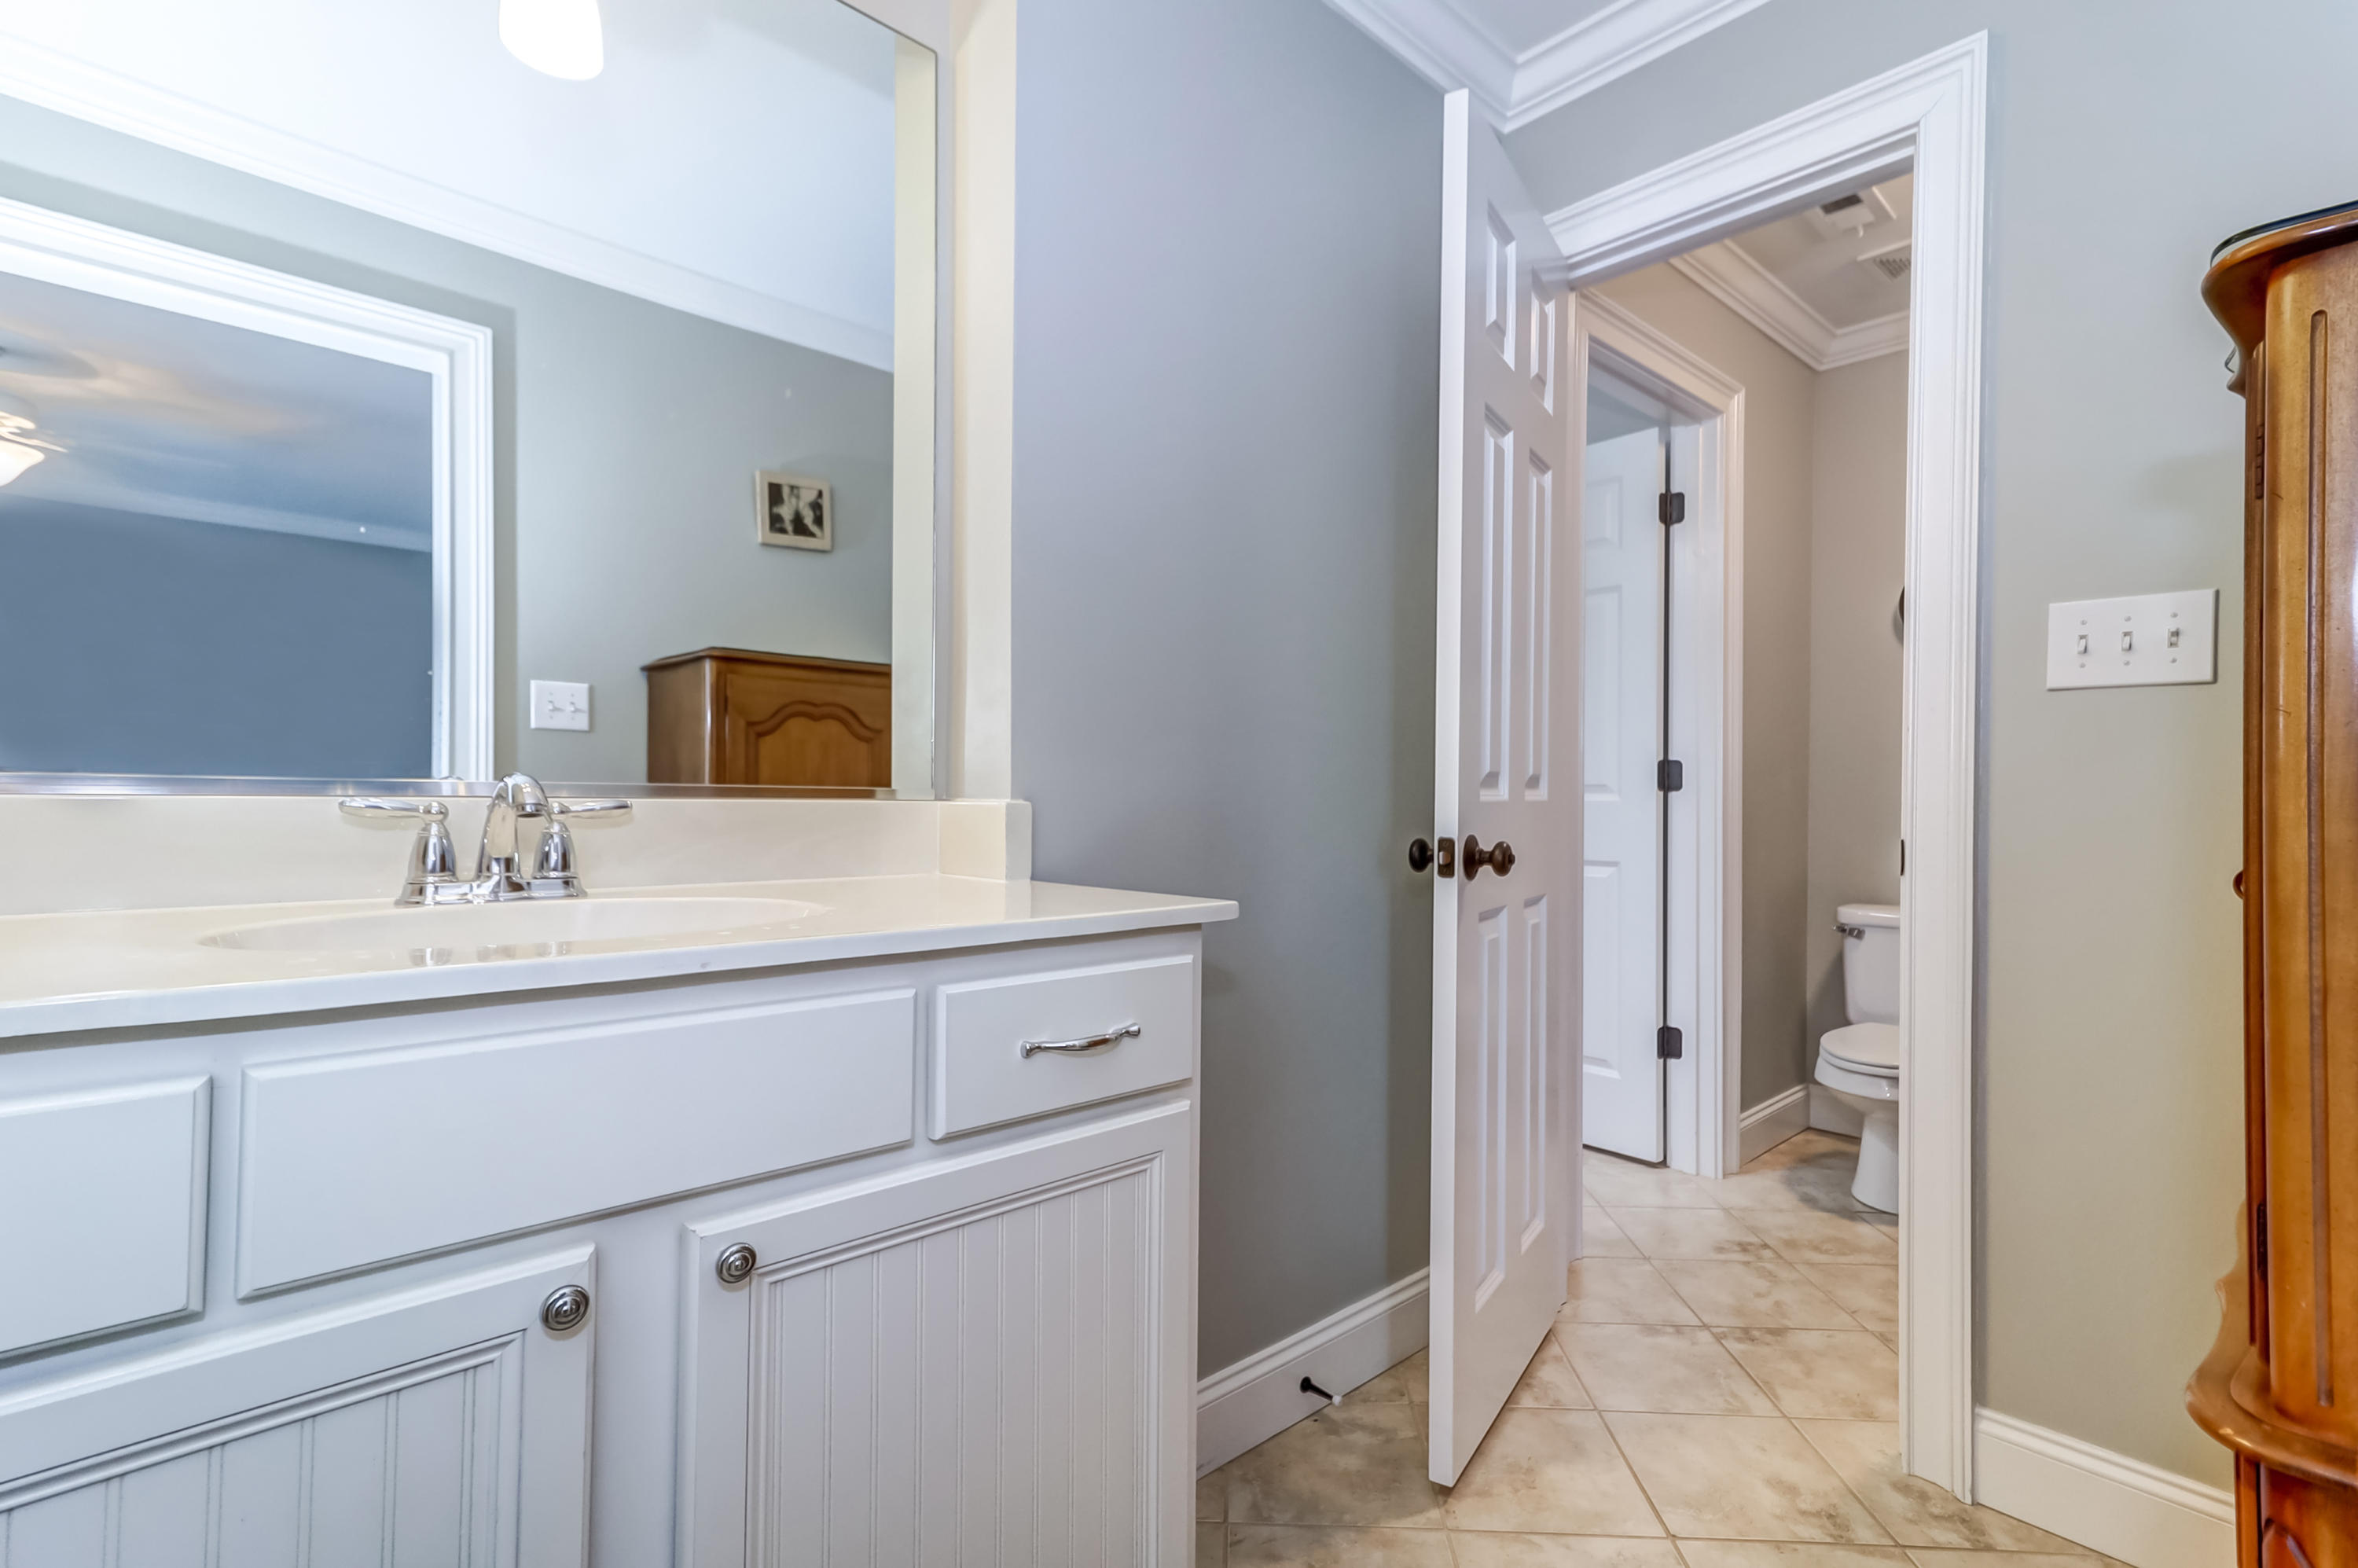 Woodward Pointe Homes For Sale - 657 White Chapel, Charleston, SC - 2